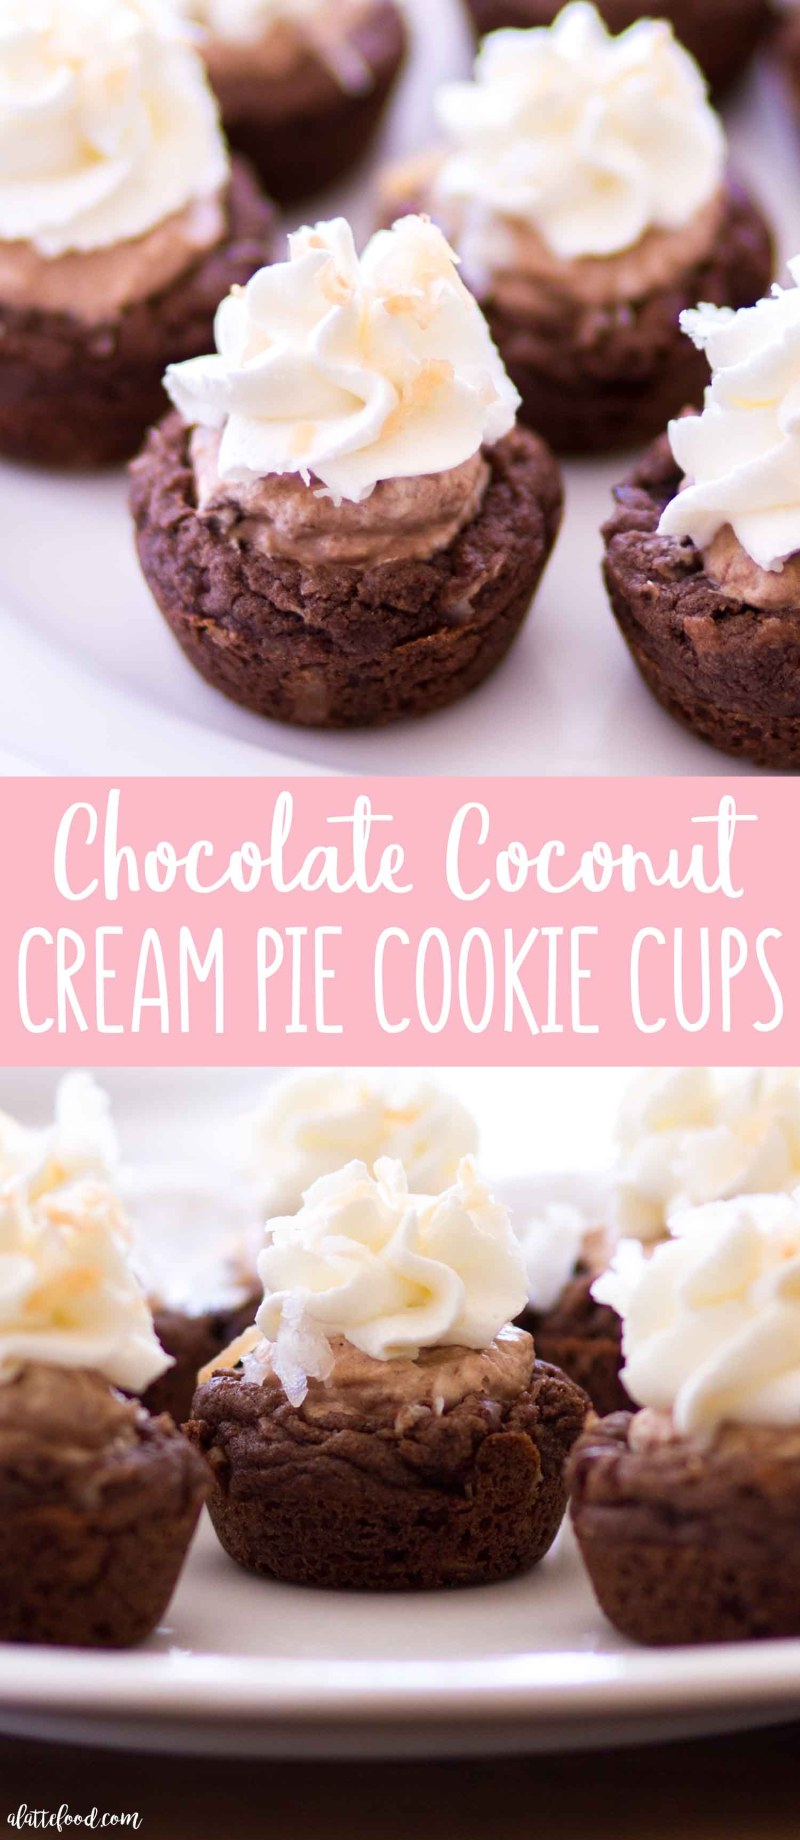 Easy Chocolate Coconut Cream Pie Cookie Cups with homemade stabilized whipped cream and toasted coconut